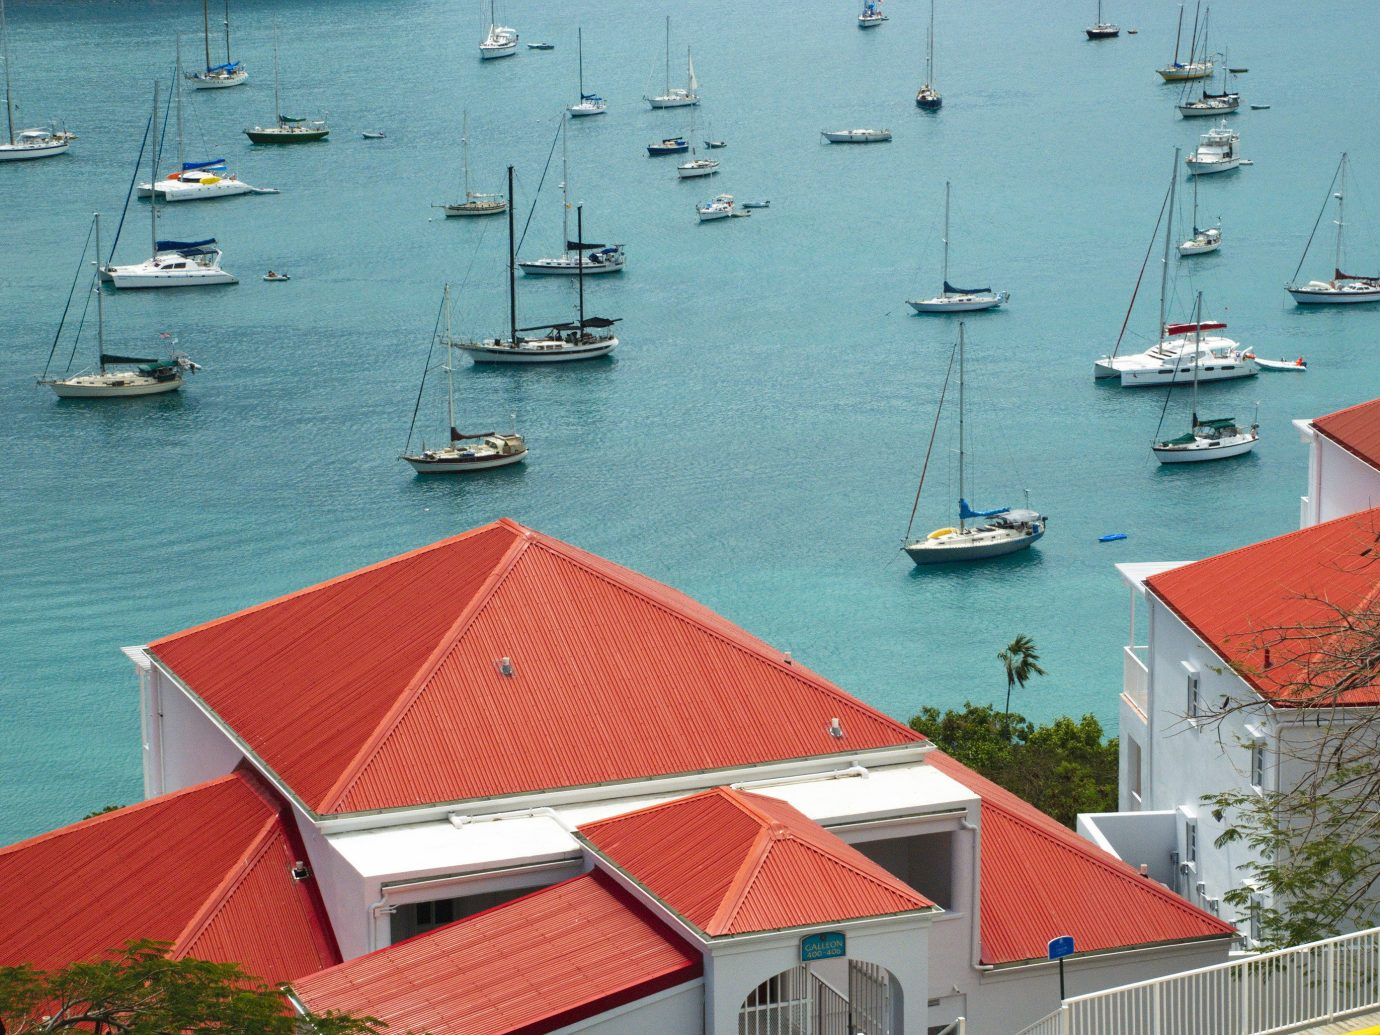 Trip Ideas water outdoor Boat dock red vehicle marina Sea Harbor port mast surrounded